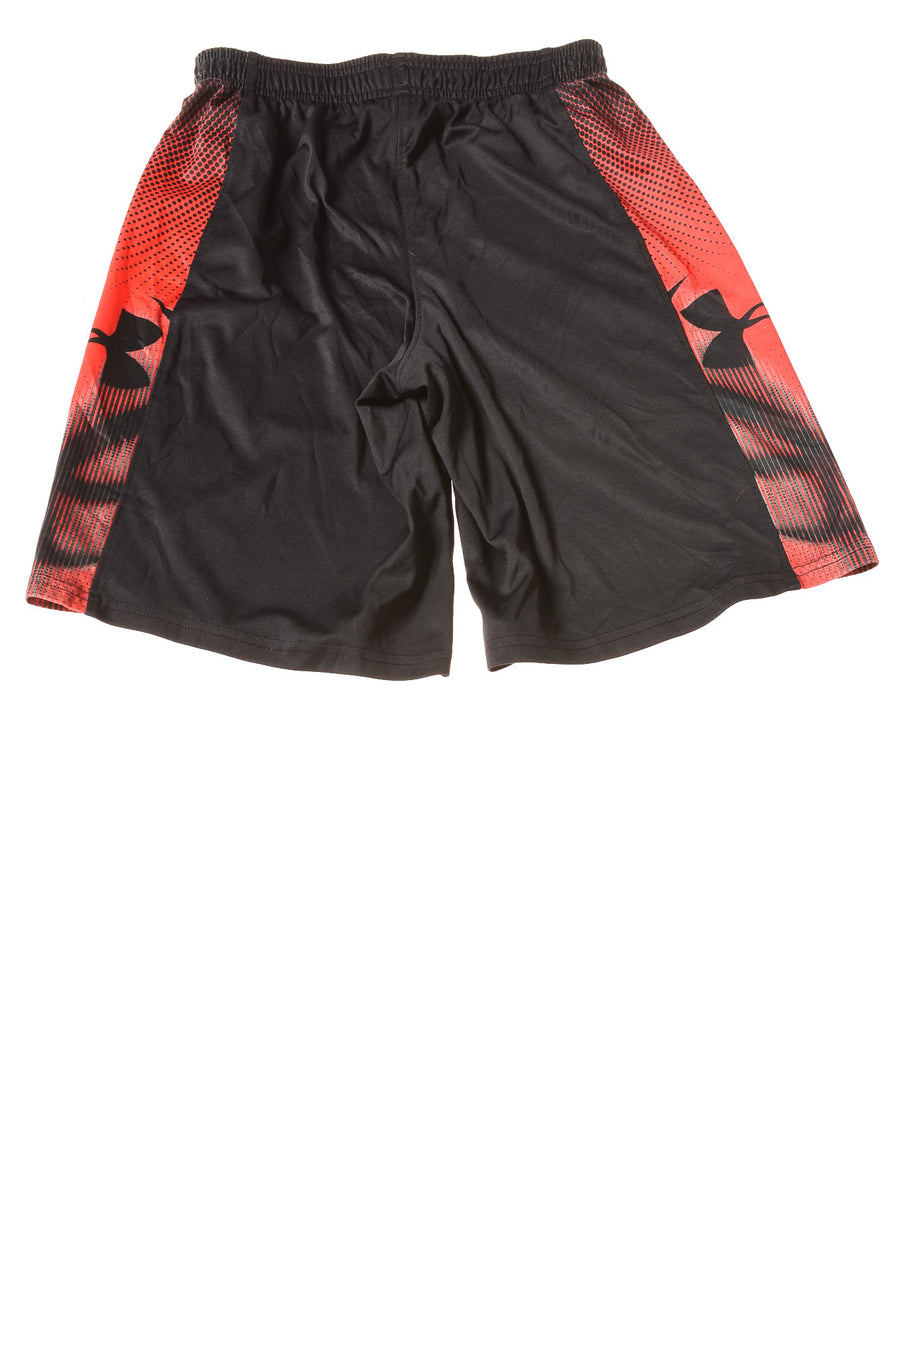 USED Under Armour Boy's Shorts Medium Black & Red / Print